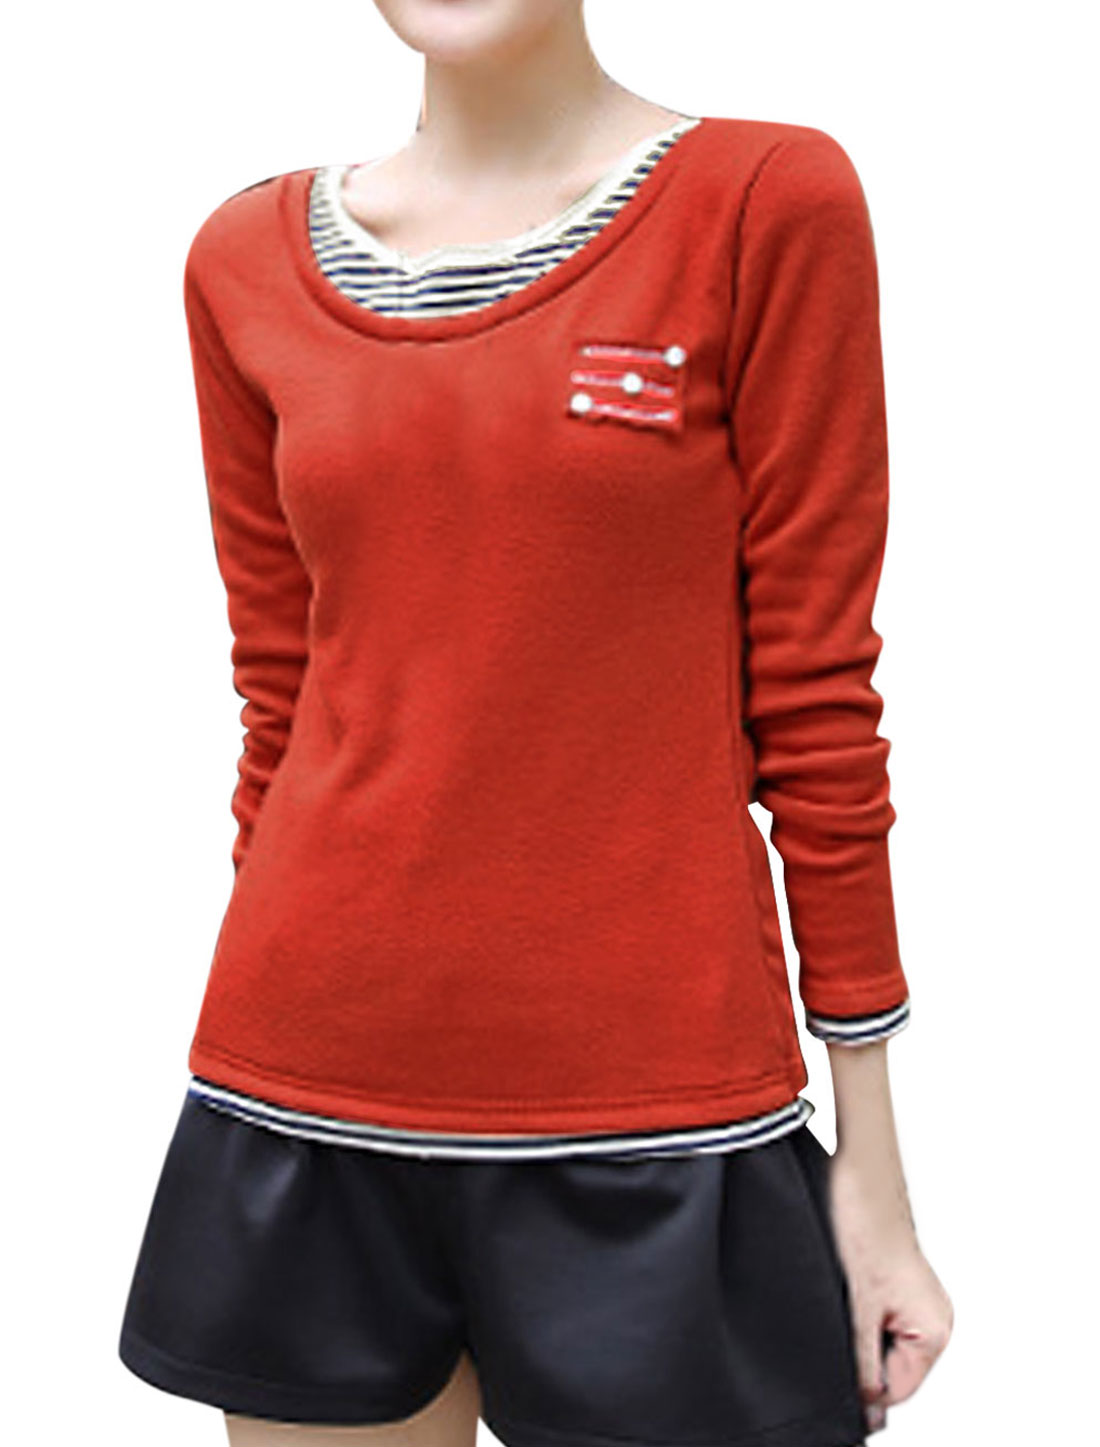 Women Pullover Long Sleeve Layered Shirts Tee Shirt Warm Red S